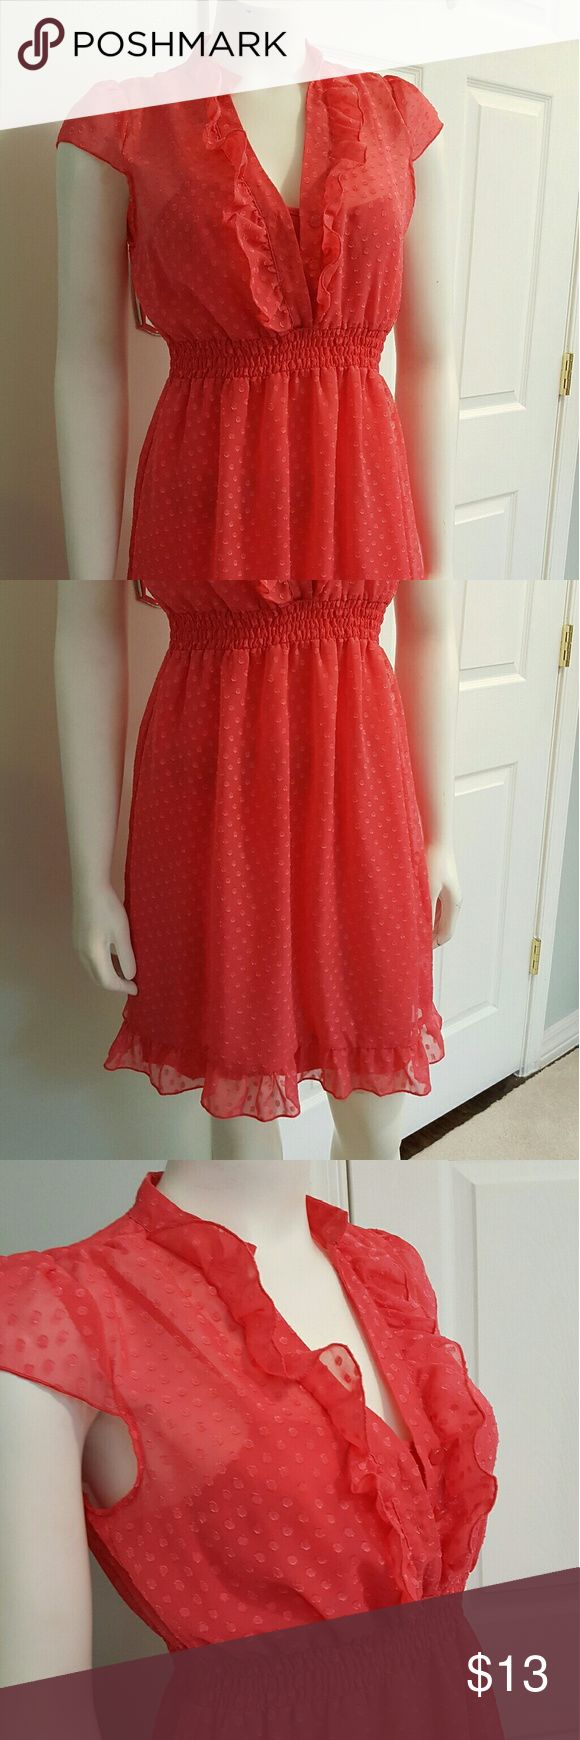 Sam & Max size M Salmon colored sheer  with connected cami dress Pullover with ruffle neck line Cap sleeve  Elastic fitted waist  Super cute.  Great condition Sam & Max  Dresses